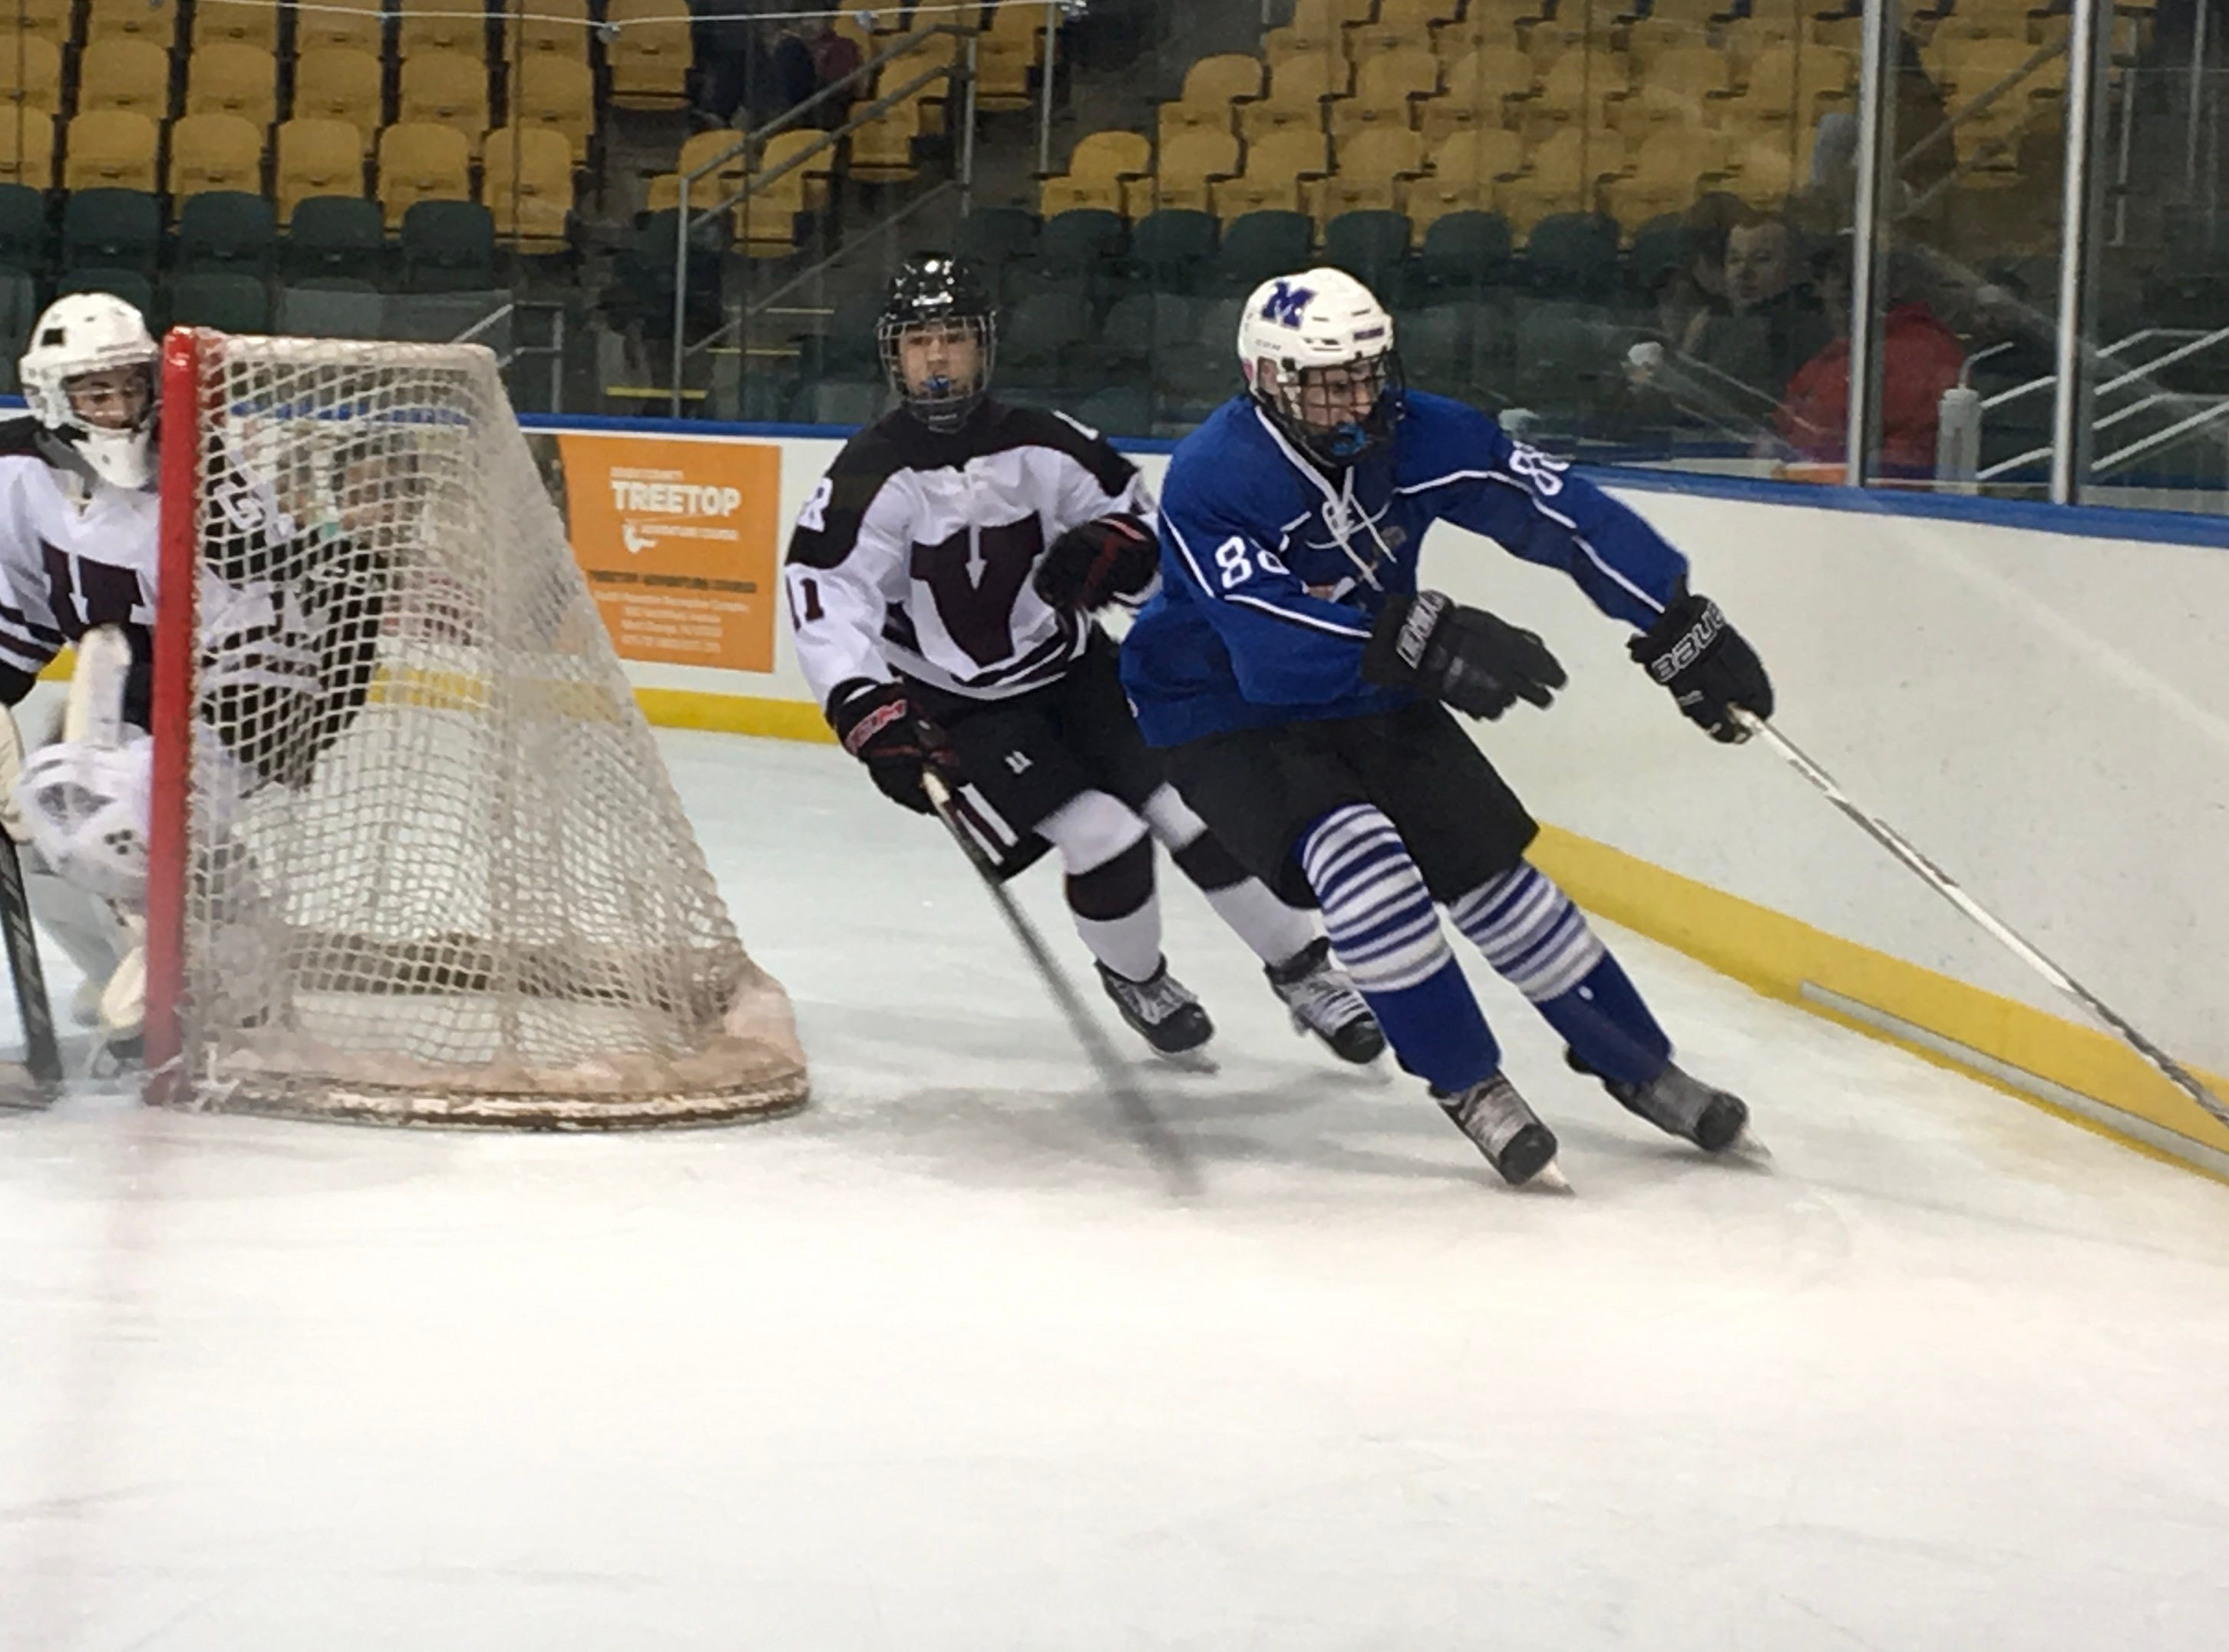 Millburn hockey opens season with victory over Verona-Glen Ridge